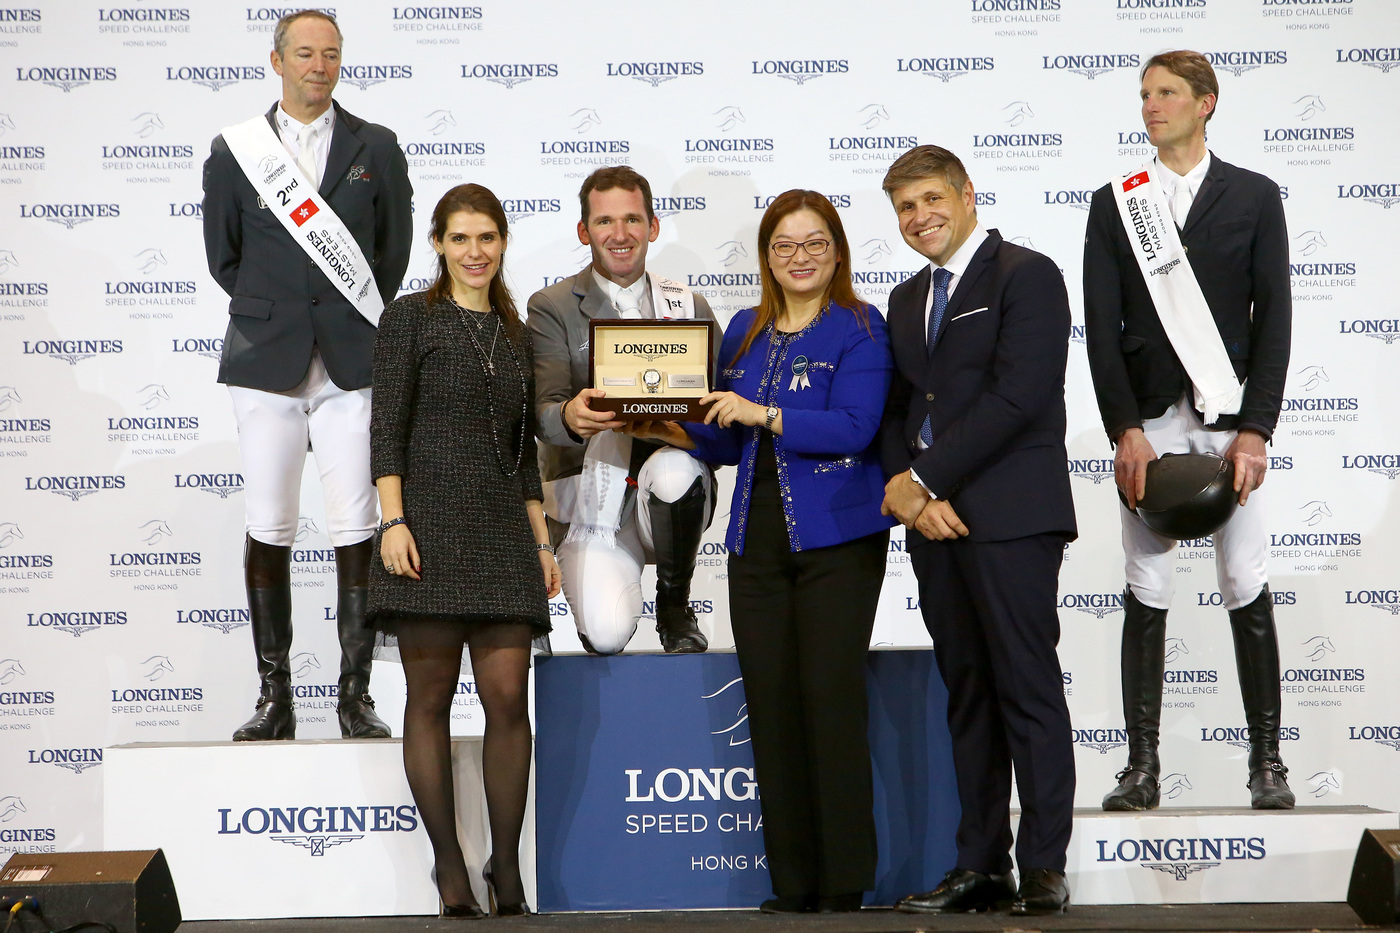 Longines Show Jumping Event: The Longines Masters of Hong Kong: Patrice Delaveau on Aquila HDC takes top class Longines Grand Prix win 10